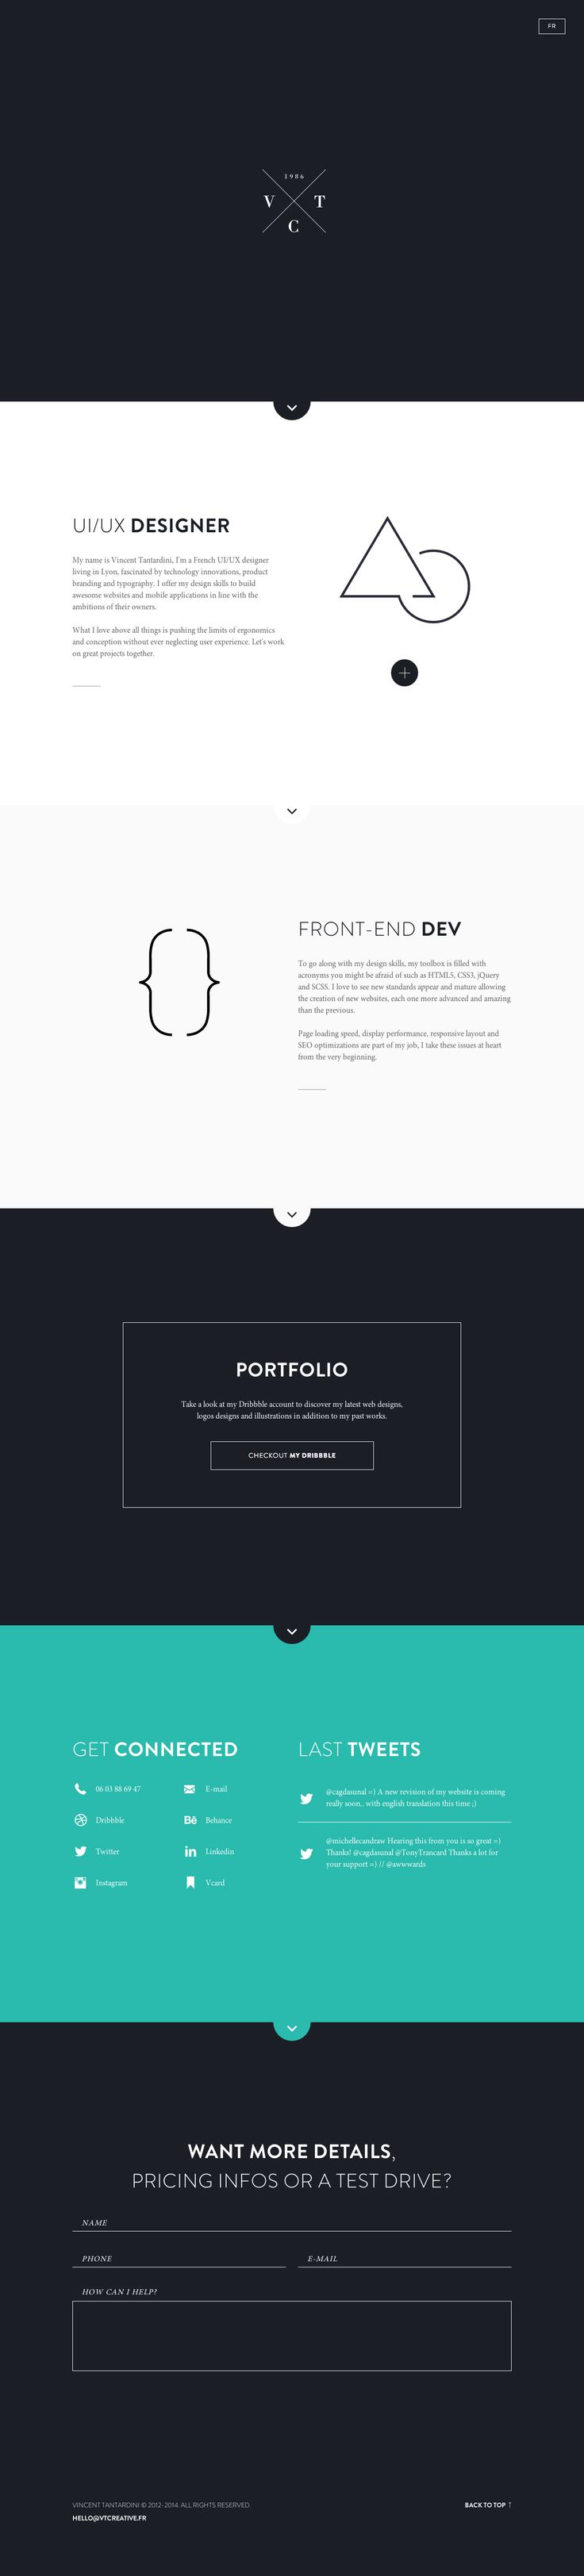 Portofolio Minimalist http://dribbble.com/shots/1427991-Personal-website/attachments/209679